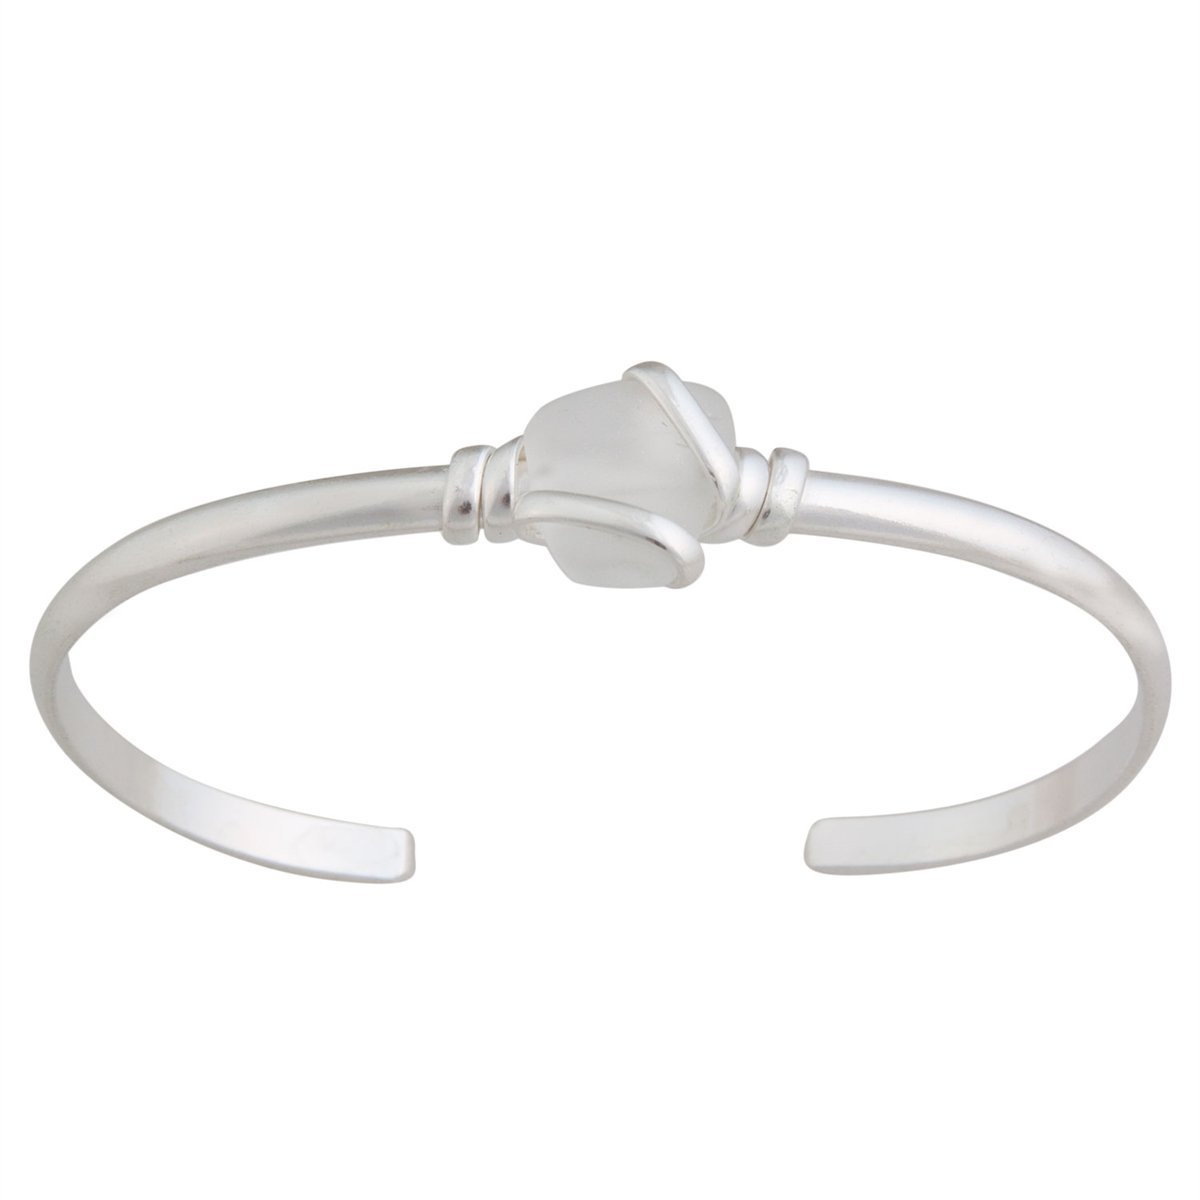 alpaca-recycled-glass-mini-cuff-white - 1 - Charles Albert Inc